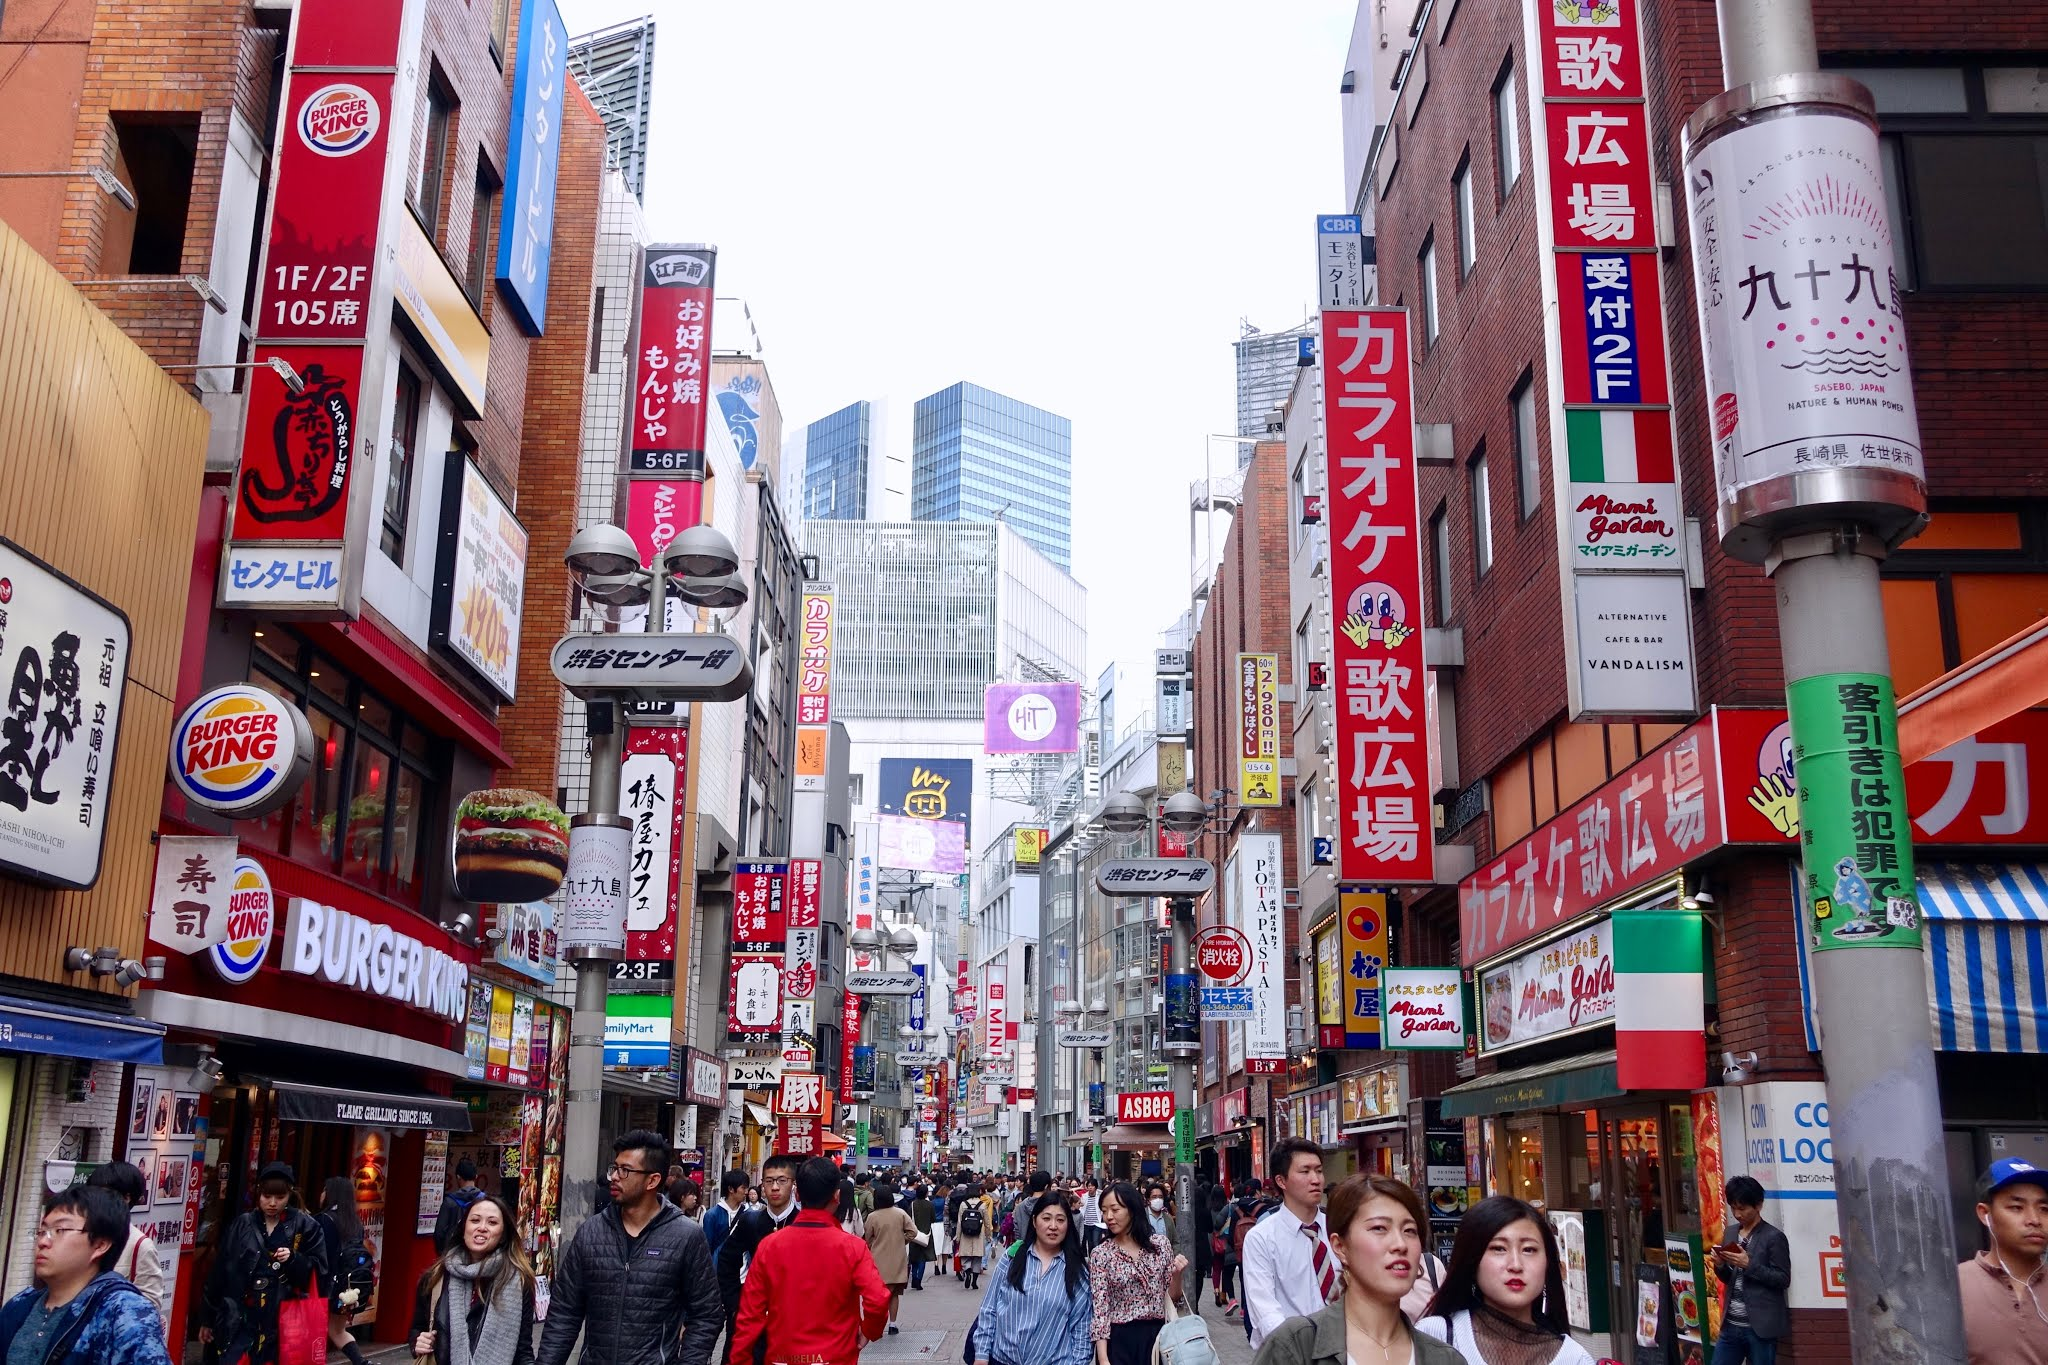 THINGS TO SEE AND DO IN TOKYO, JAPAN